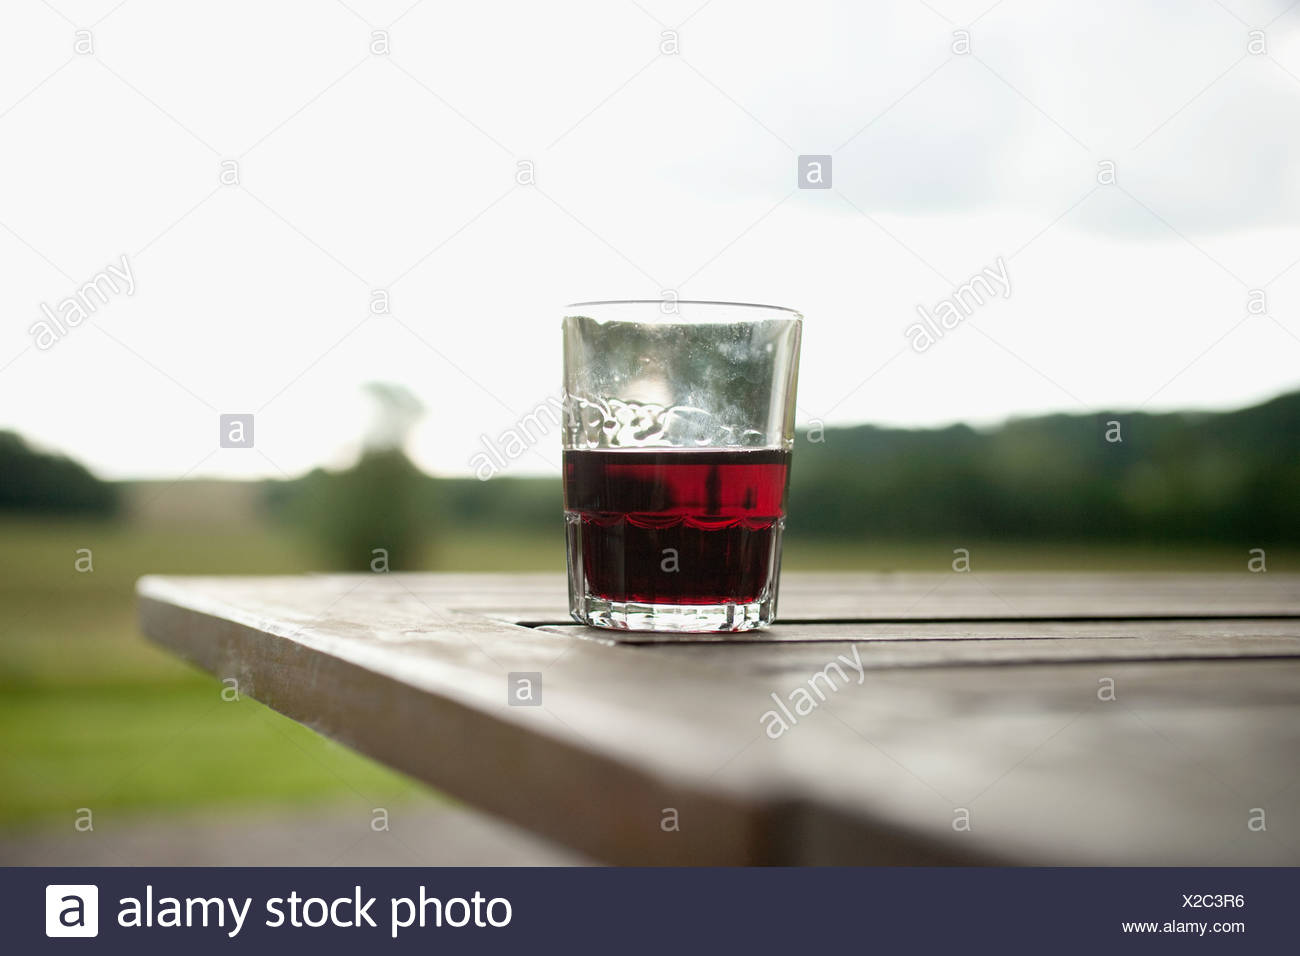 Drinks tumbler on picnic table - Stock Image